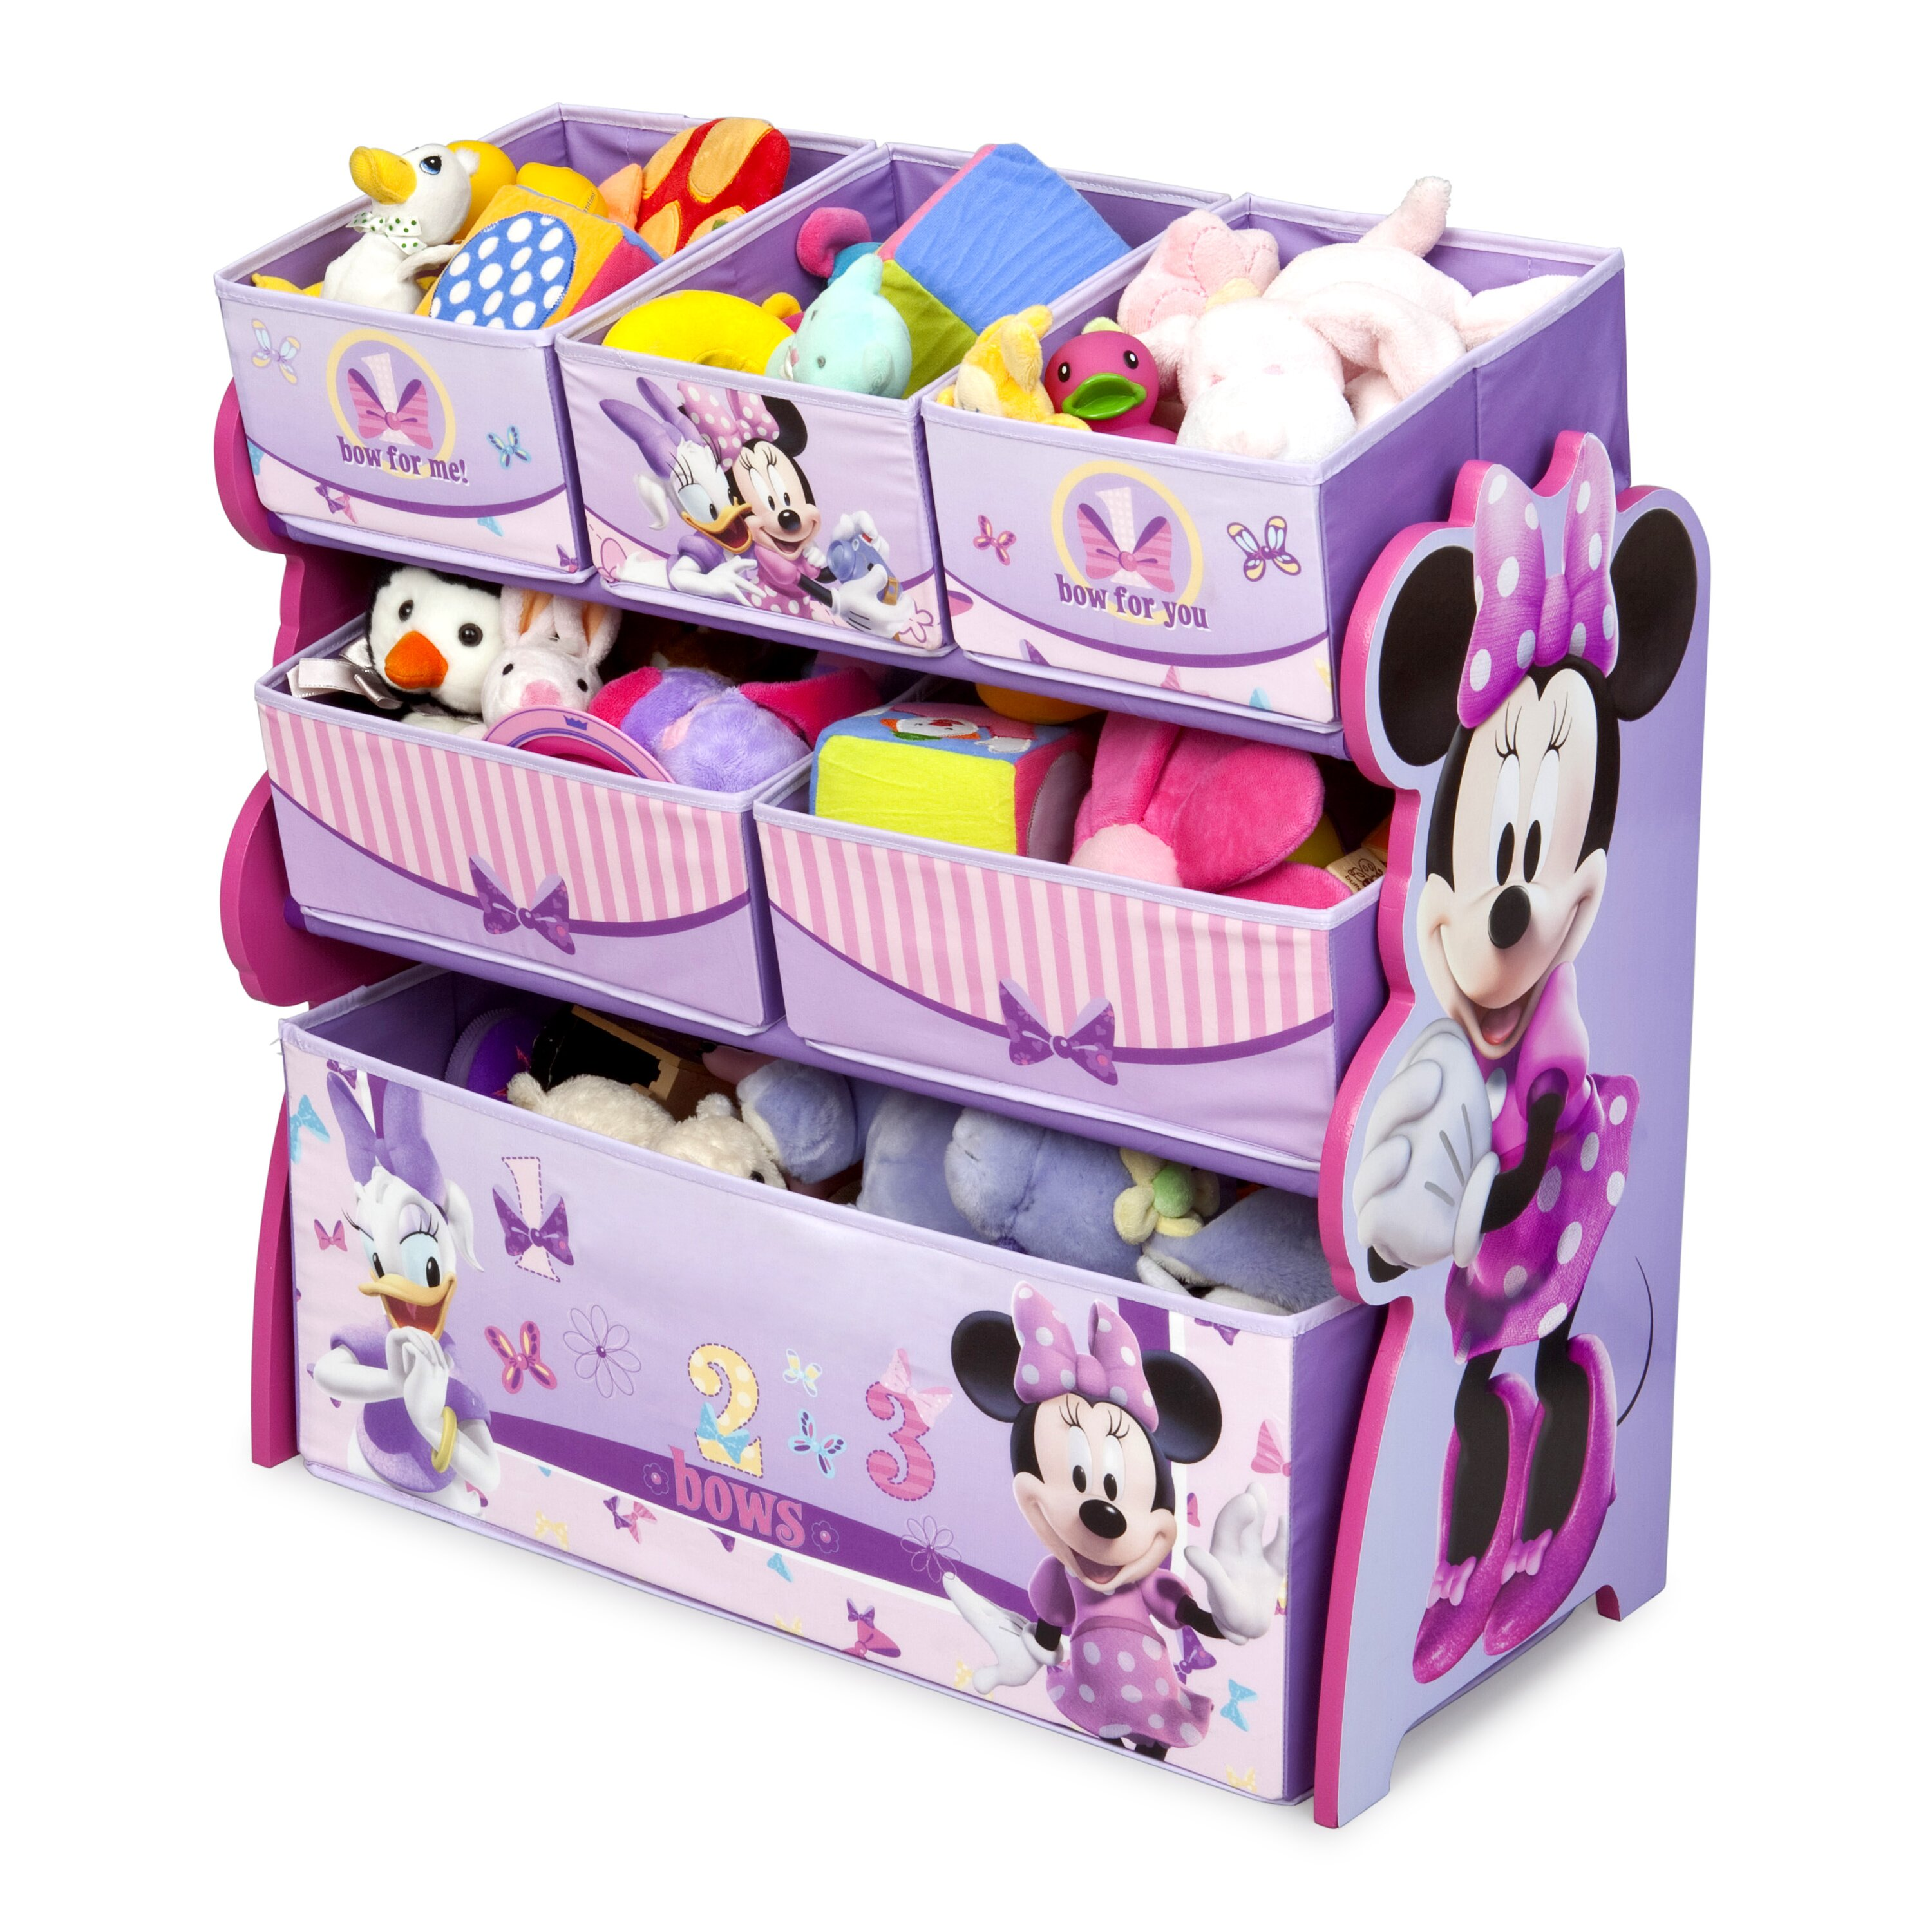 Minnie Mouse Play Kitchen Sets